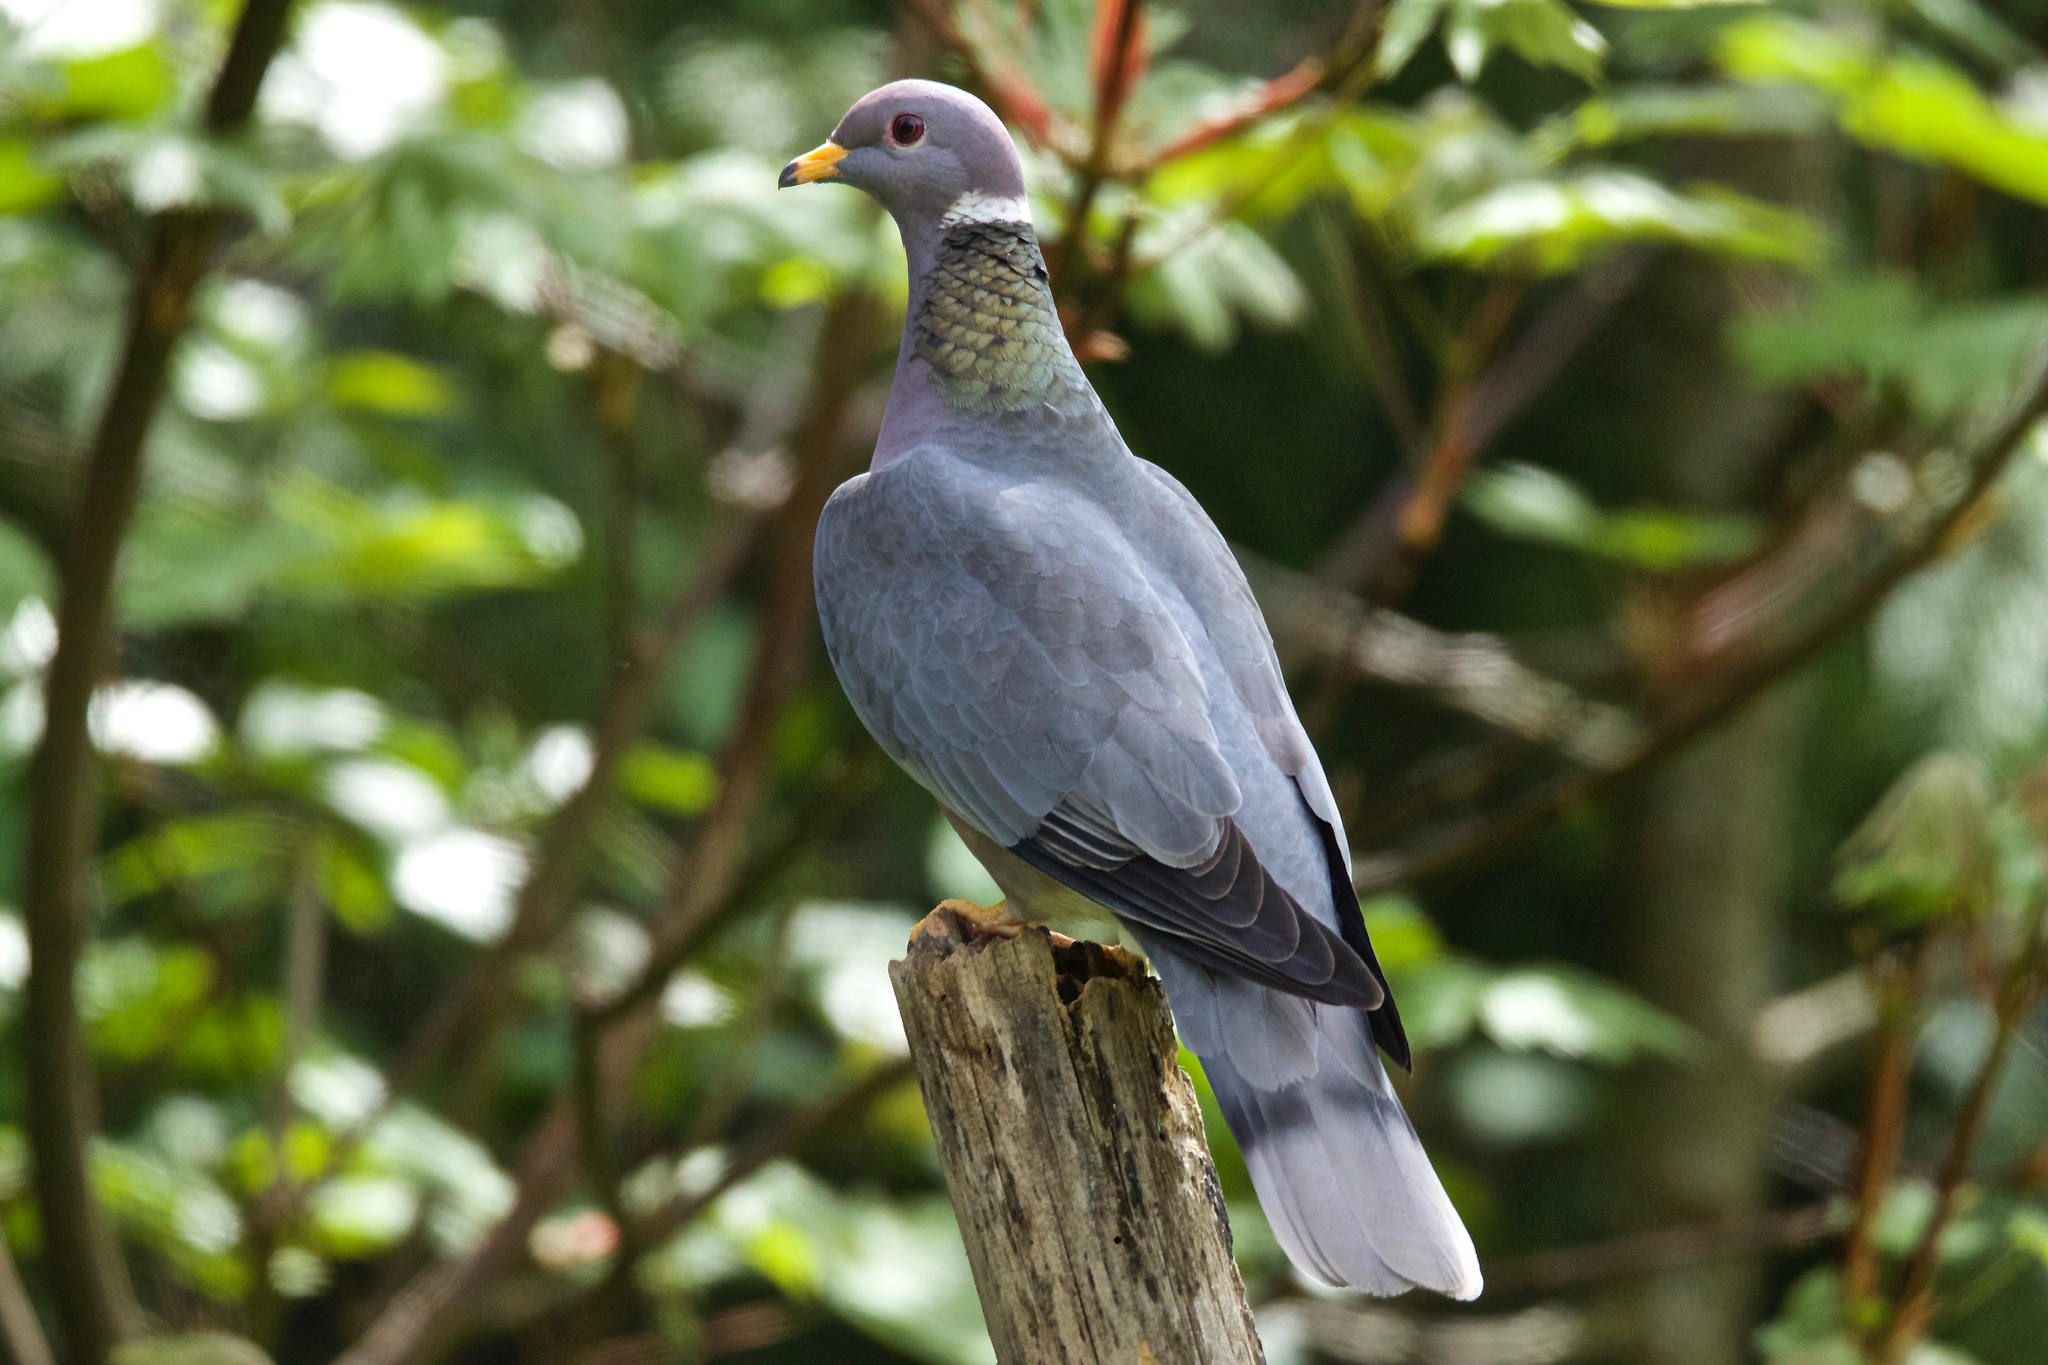 Band-tailed Pigeon. Photo: Jerry McFarland